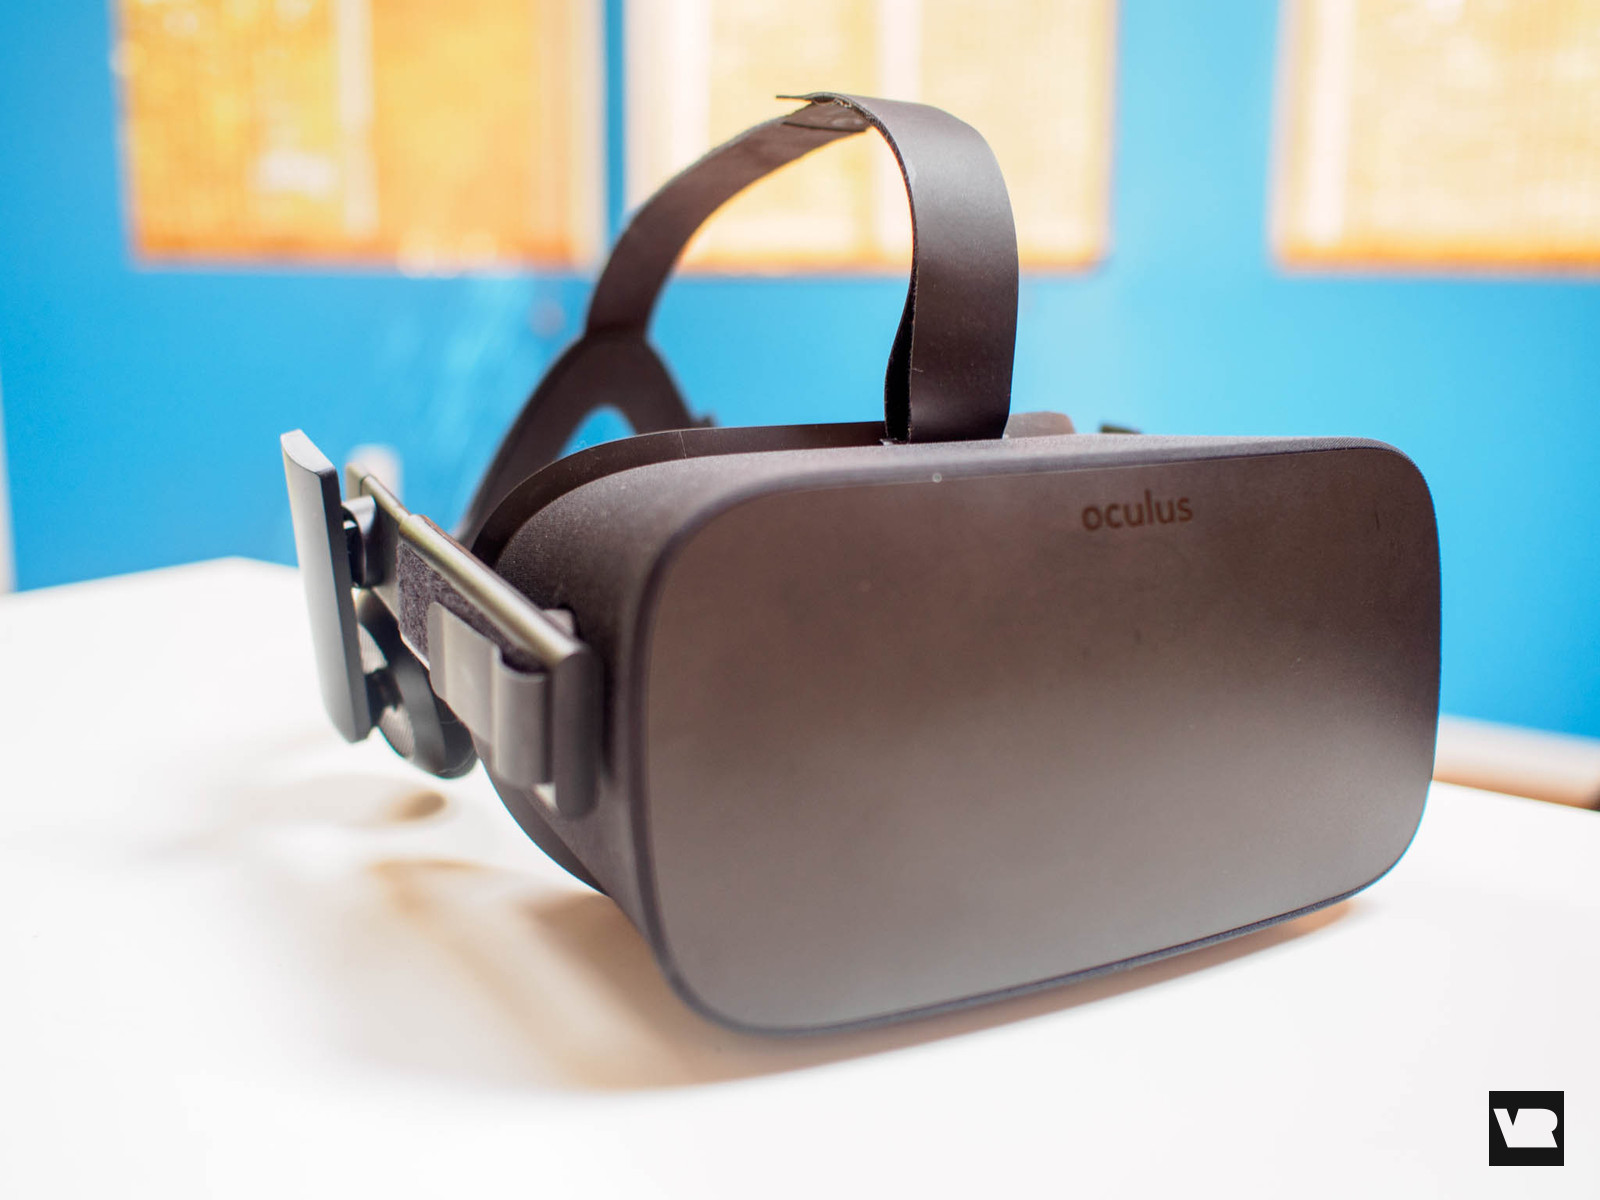 Meet the Oculus Rift